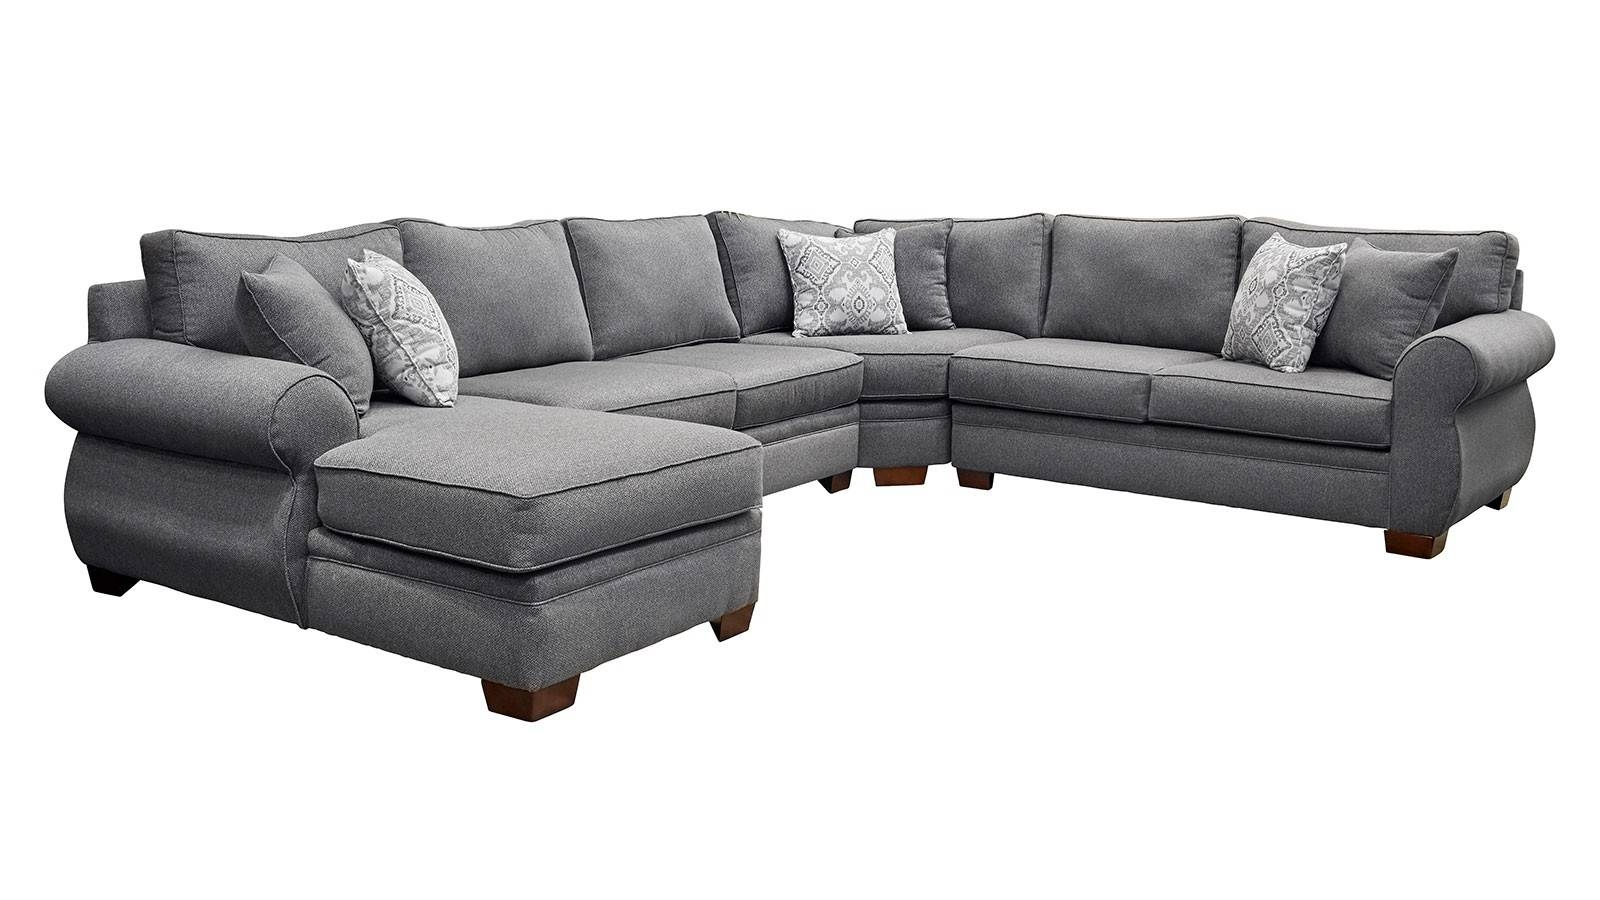 Living Room Sectionals | Gallery Furniture throughout American Made Sectional Sofas (Image 16 of 30)